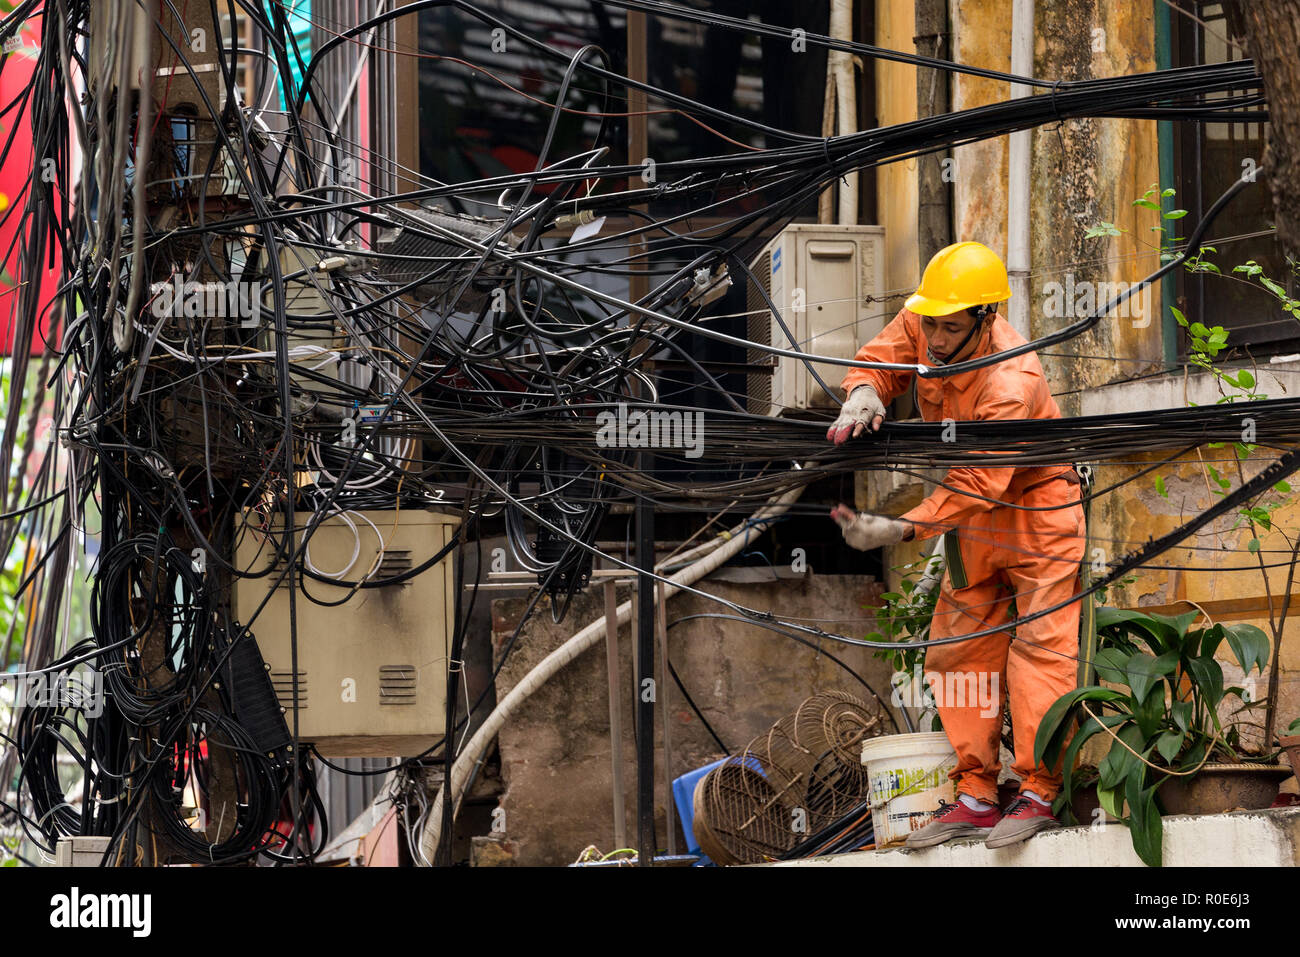 Hanoi Vietnam December 16 2014 A Technician Is Repairing Or Messy Network Wiring Checking The Electrical In City Of